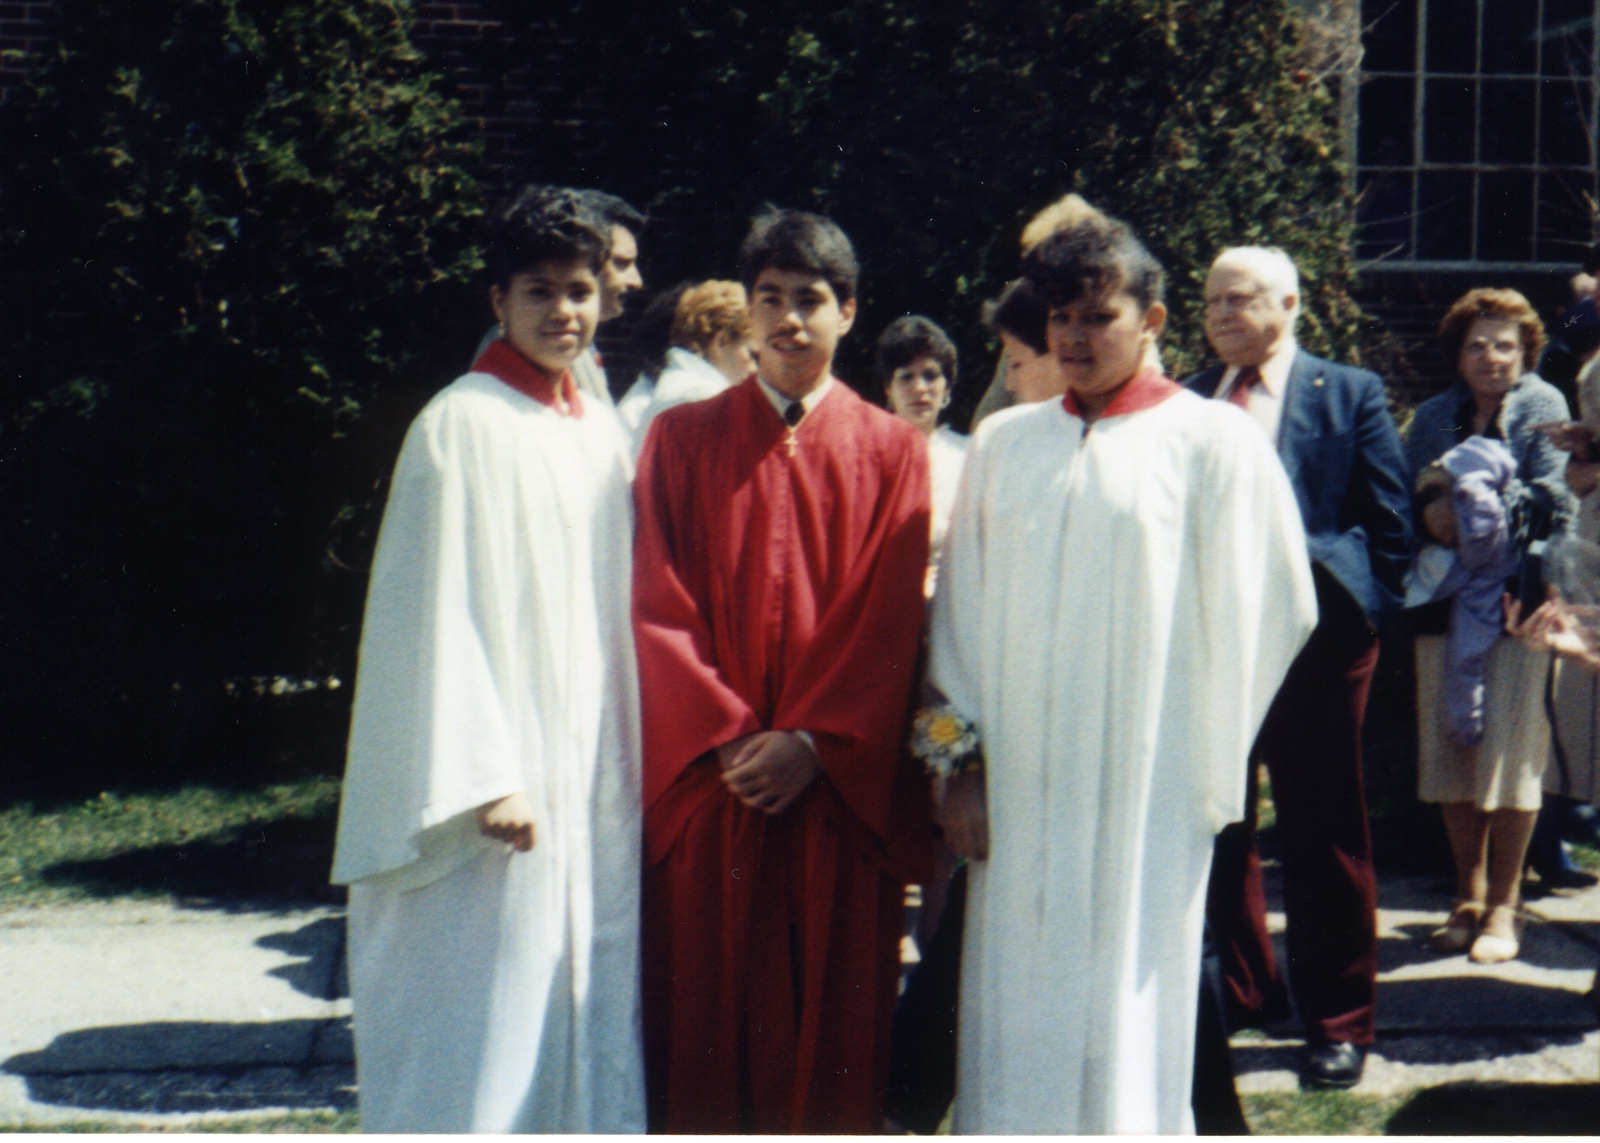 1987 06 - Dave and Tamara's confirmation 010